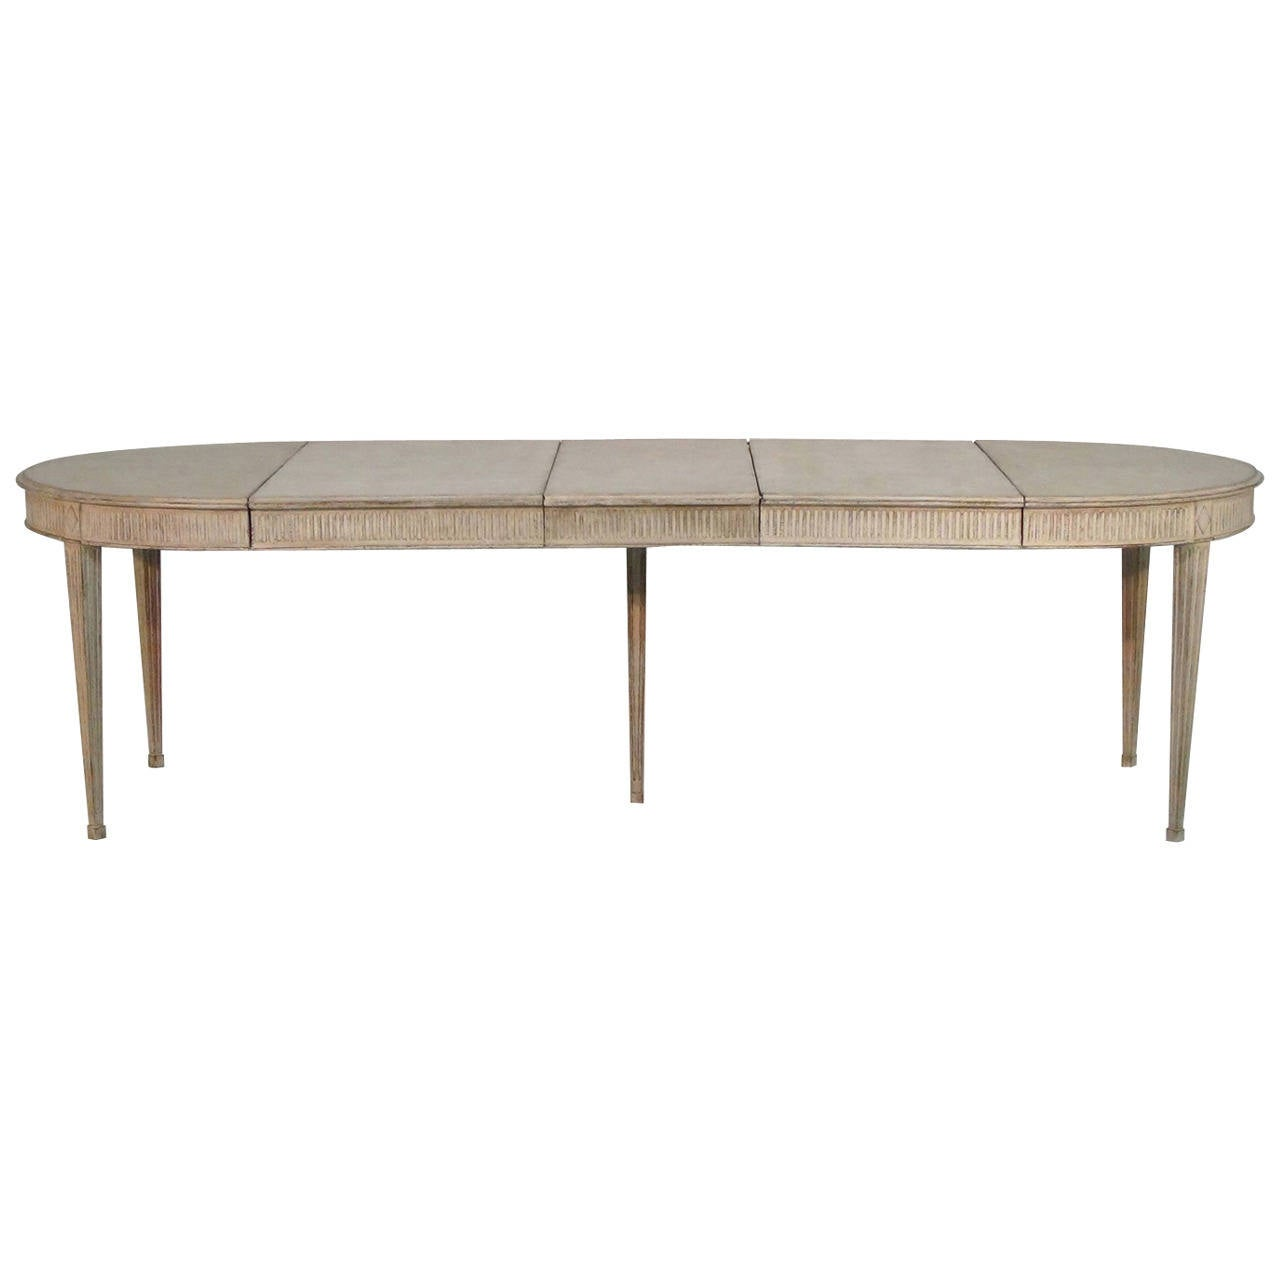 Superb img of Swedish Dining Table in the Gustavian Style at 1stdibs with #654B39 color and 1280x1280 pixels